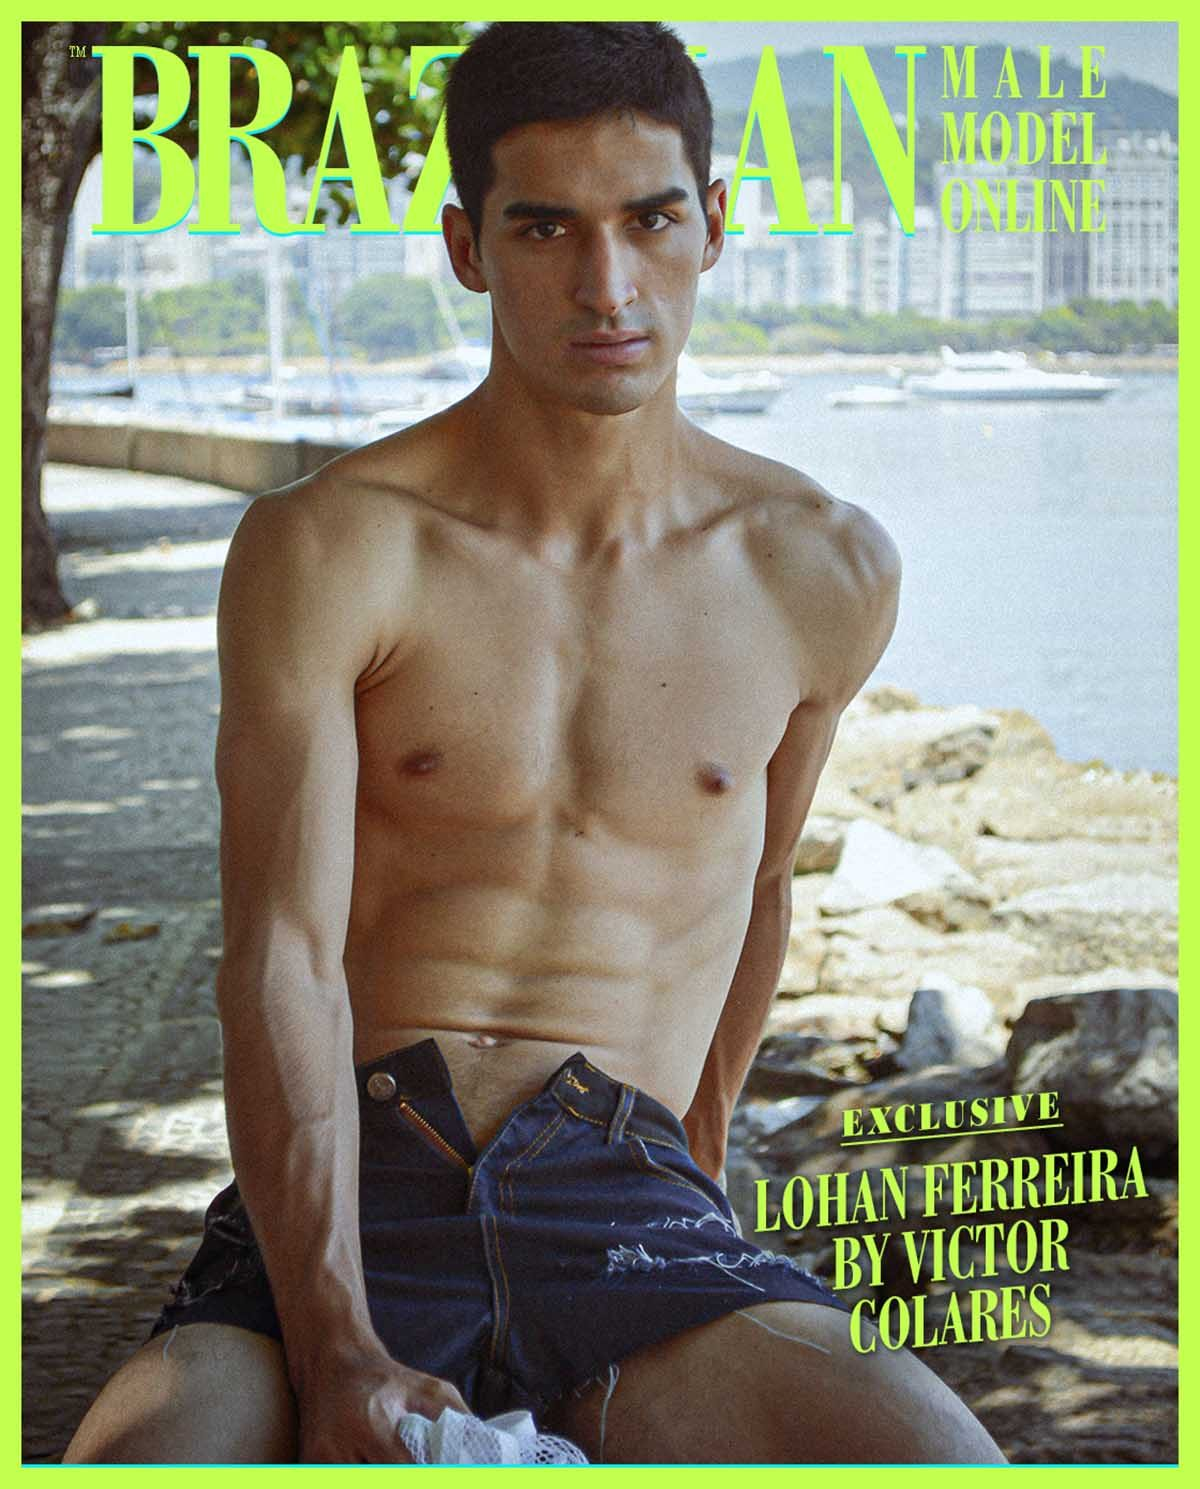 Lohan Ferreira by Victor Colares